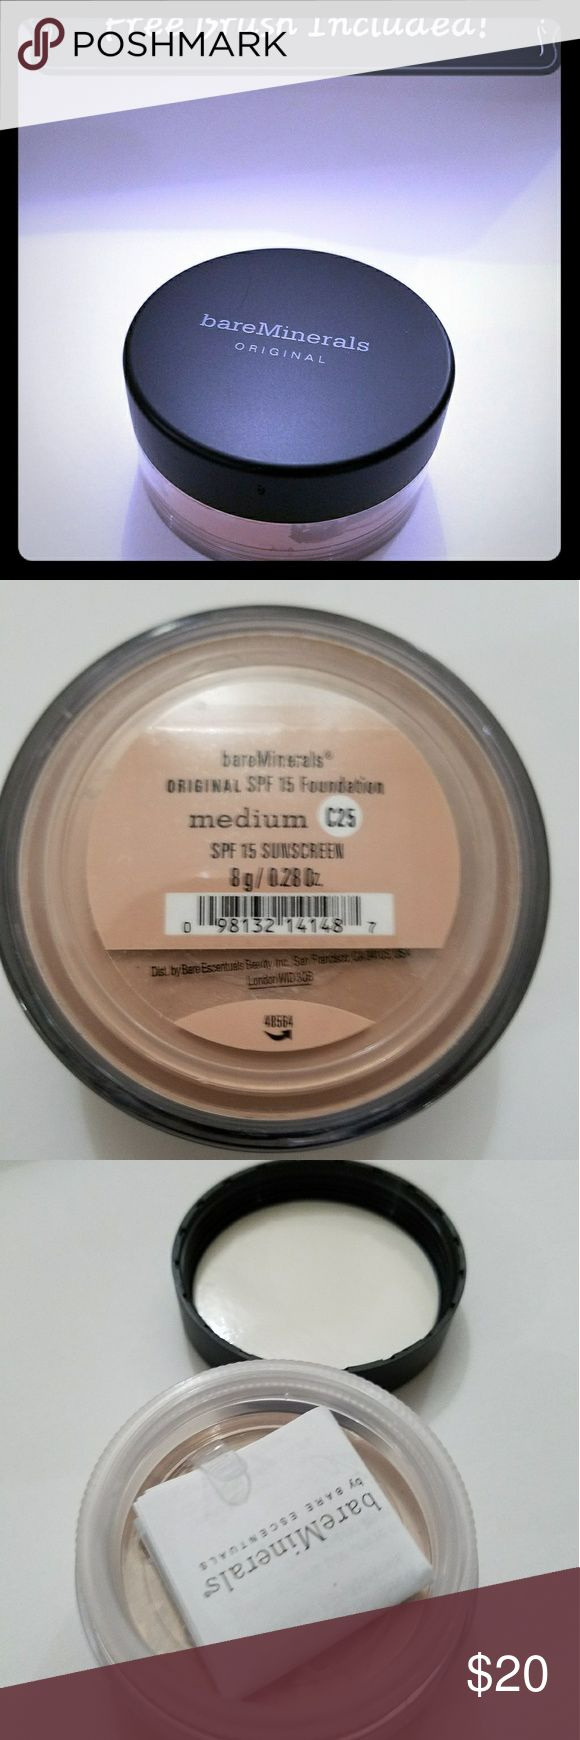 Bare minerals Powder foundation NEW🎉 Brand new bare minerals foundation powder Color is Medium C25 SPF 15 sunscreen  Full sized 8g Free brush included bareMinerals Makeup Face Powder